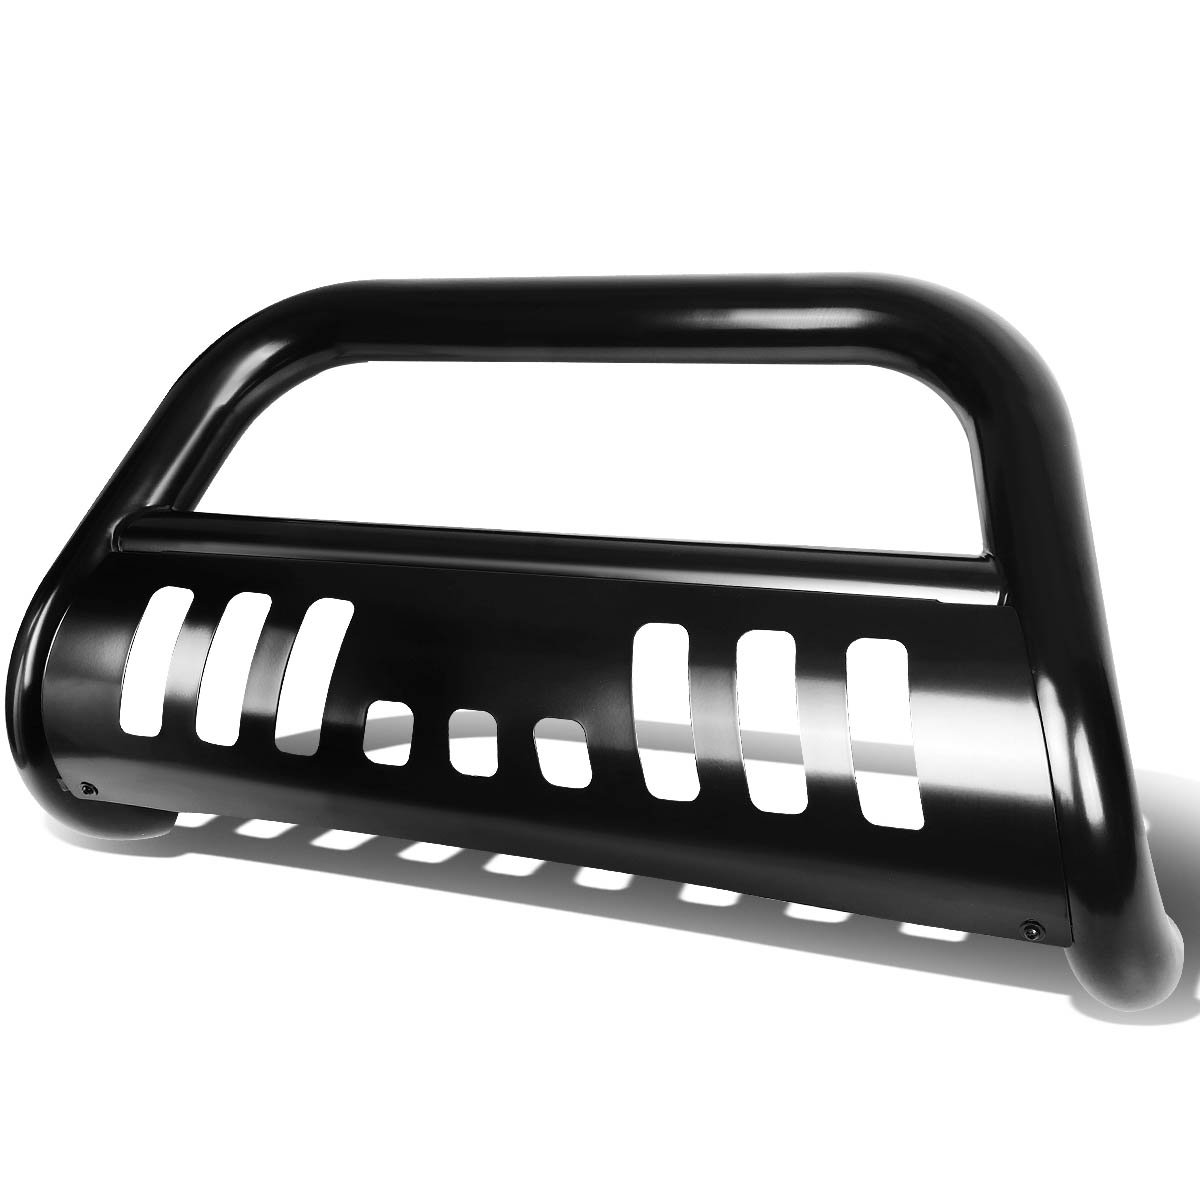 For Chevy C/K-Series C10 GMT400 3'' Bumper Push Bull Bar+Removable Skid Plate (Black)